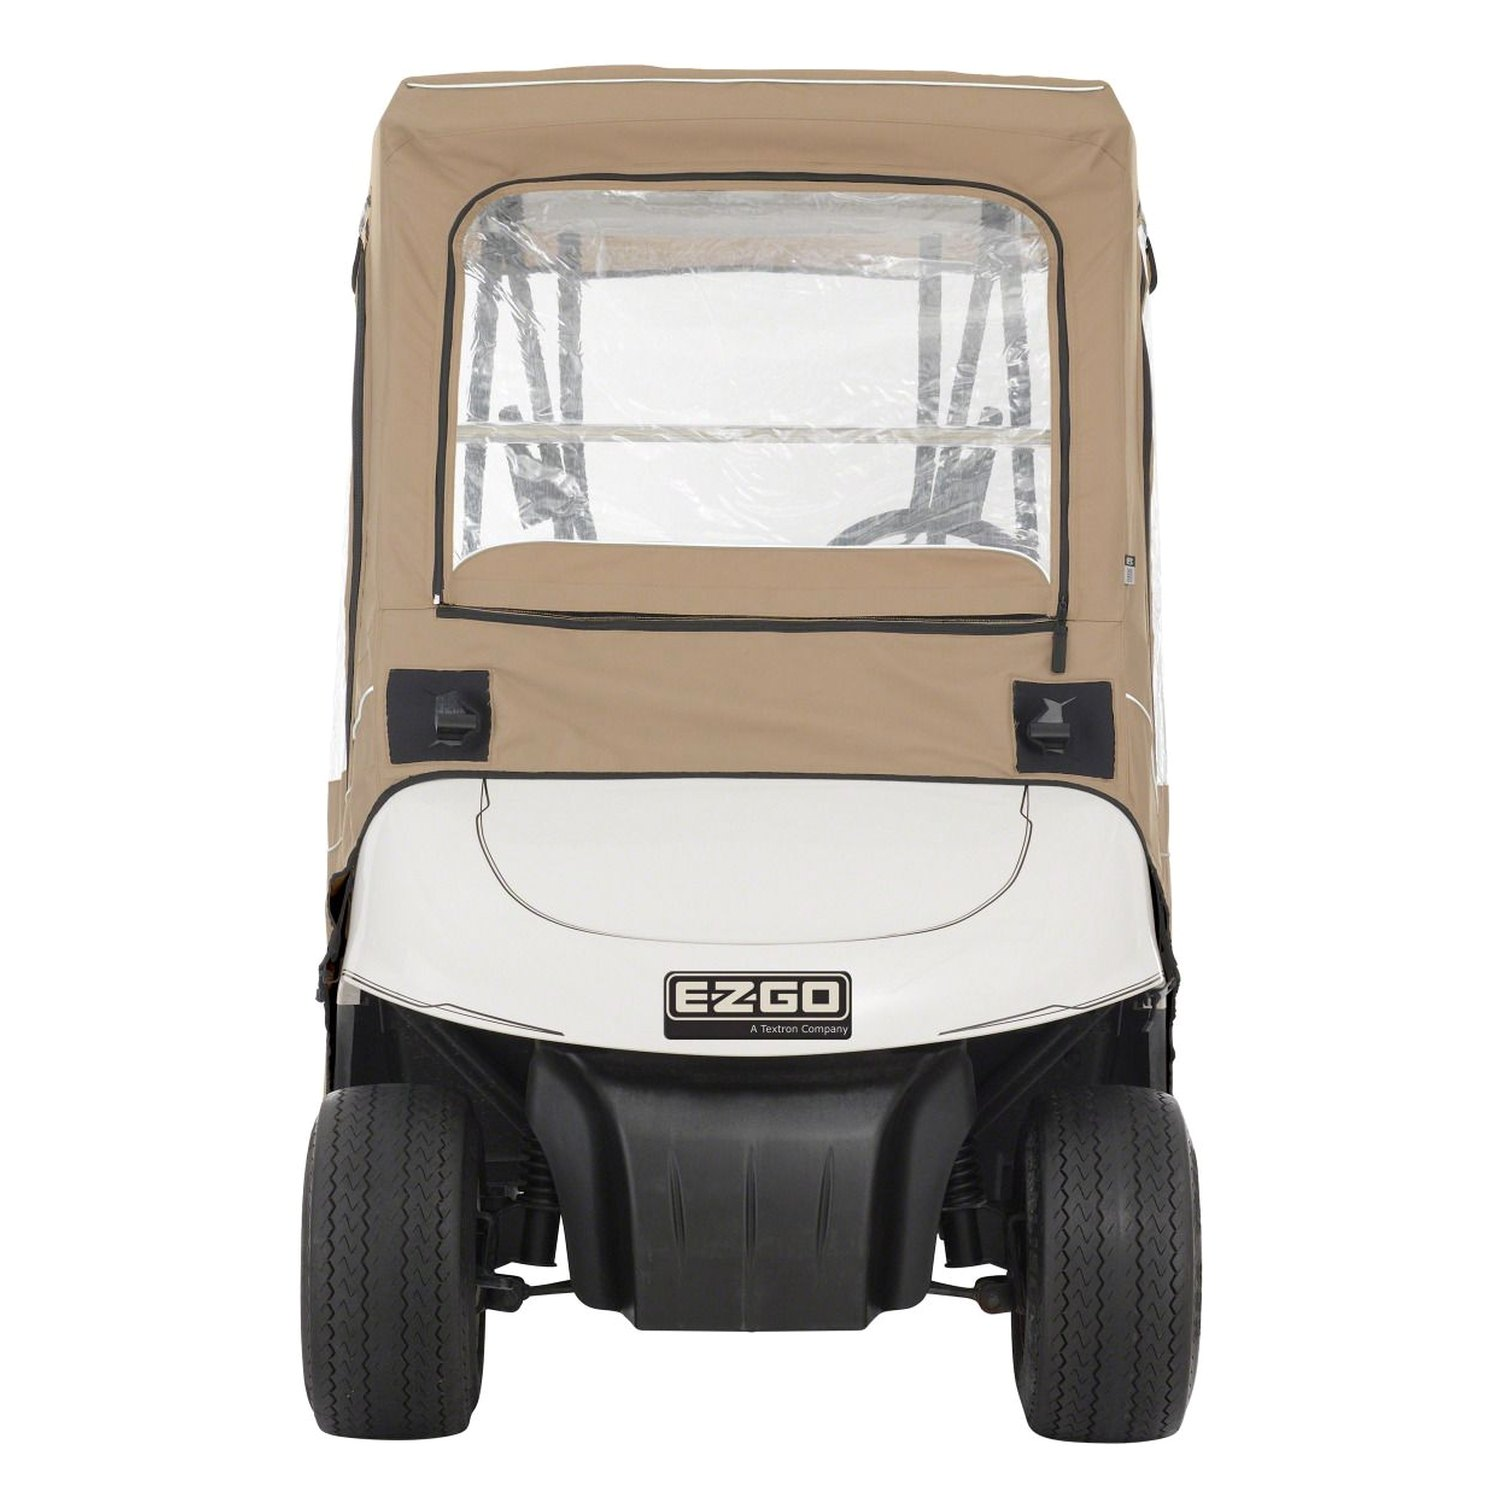 Clic Accessories® - Fairway™ Fadesafe™ E-Z-Go™ 2-Person Golf on ezgo hunting golf carts, ezgo gas golf carts, ez go cart accessories, ezgo lifted carts, lsv golf carts and accessories, ezgo golf carts dealers, ezgo golf car, ezgo electric carts, ezgo utility golf carts, ezgo custom golf carts, ezgo txt electric manual, custom golf carts accessories, club car cart accessories, golf car accessories,